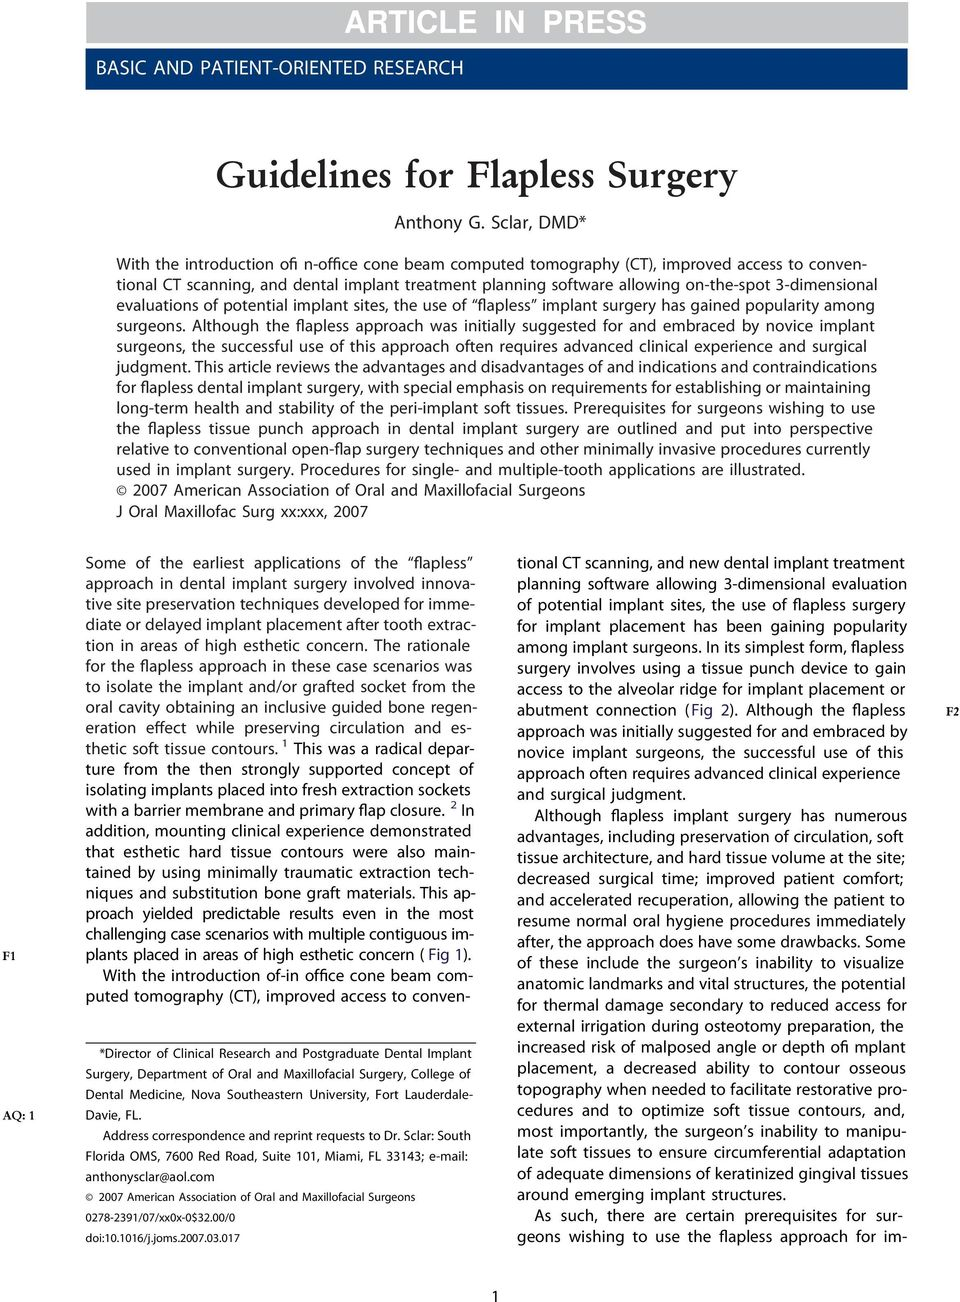 3-dimensional evaluations of potential implant sites, the use of flapless implant surgery has gained popularity among surgeons.